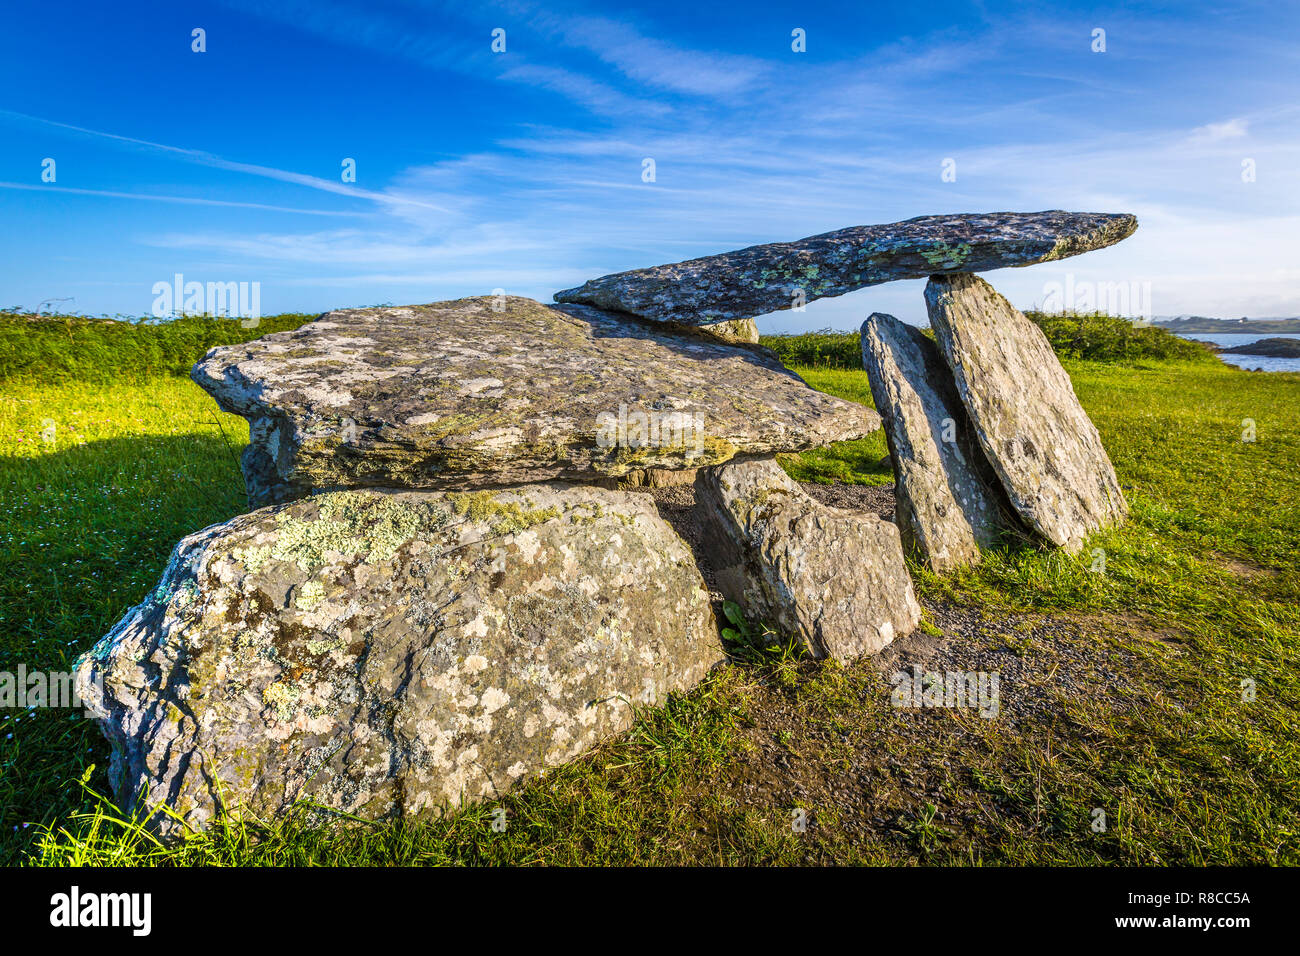 Altar Wedge Tomb, Toormore, West Cork, Ireland - Stock Image